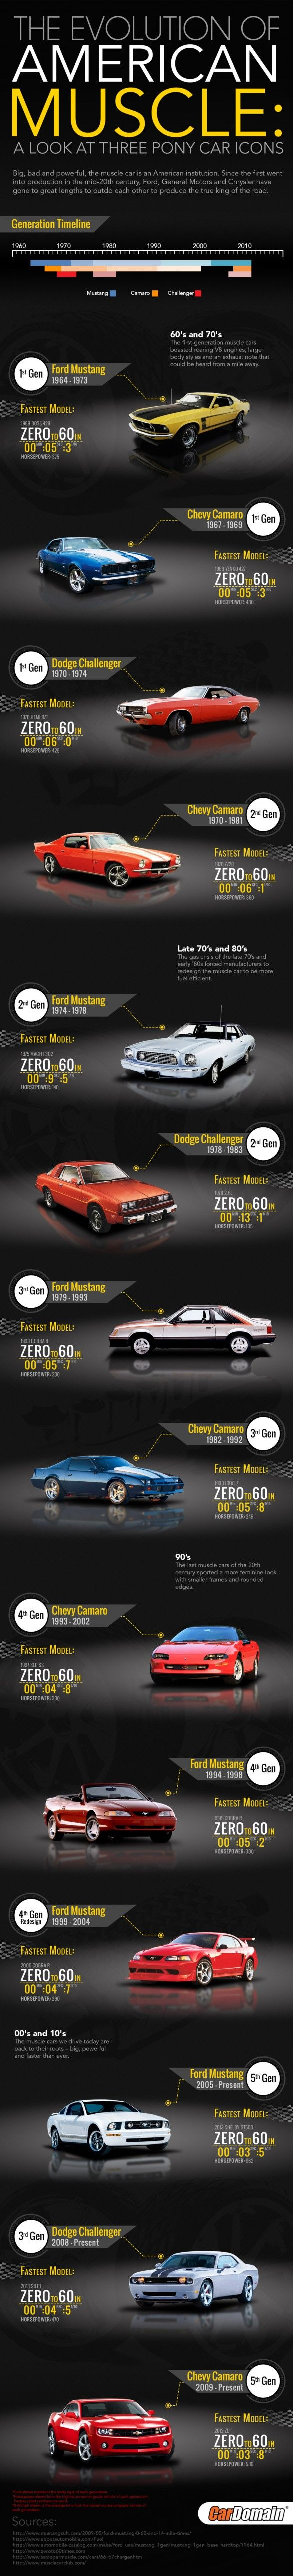 Evolution of the American Muscle Car http://perrisautospeedway.com #autospeedway #speedway #attractions